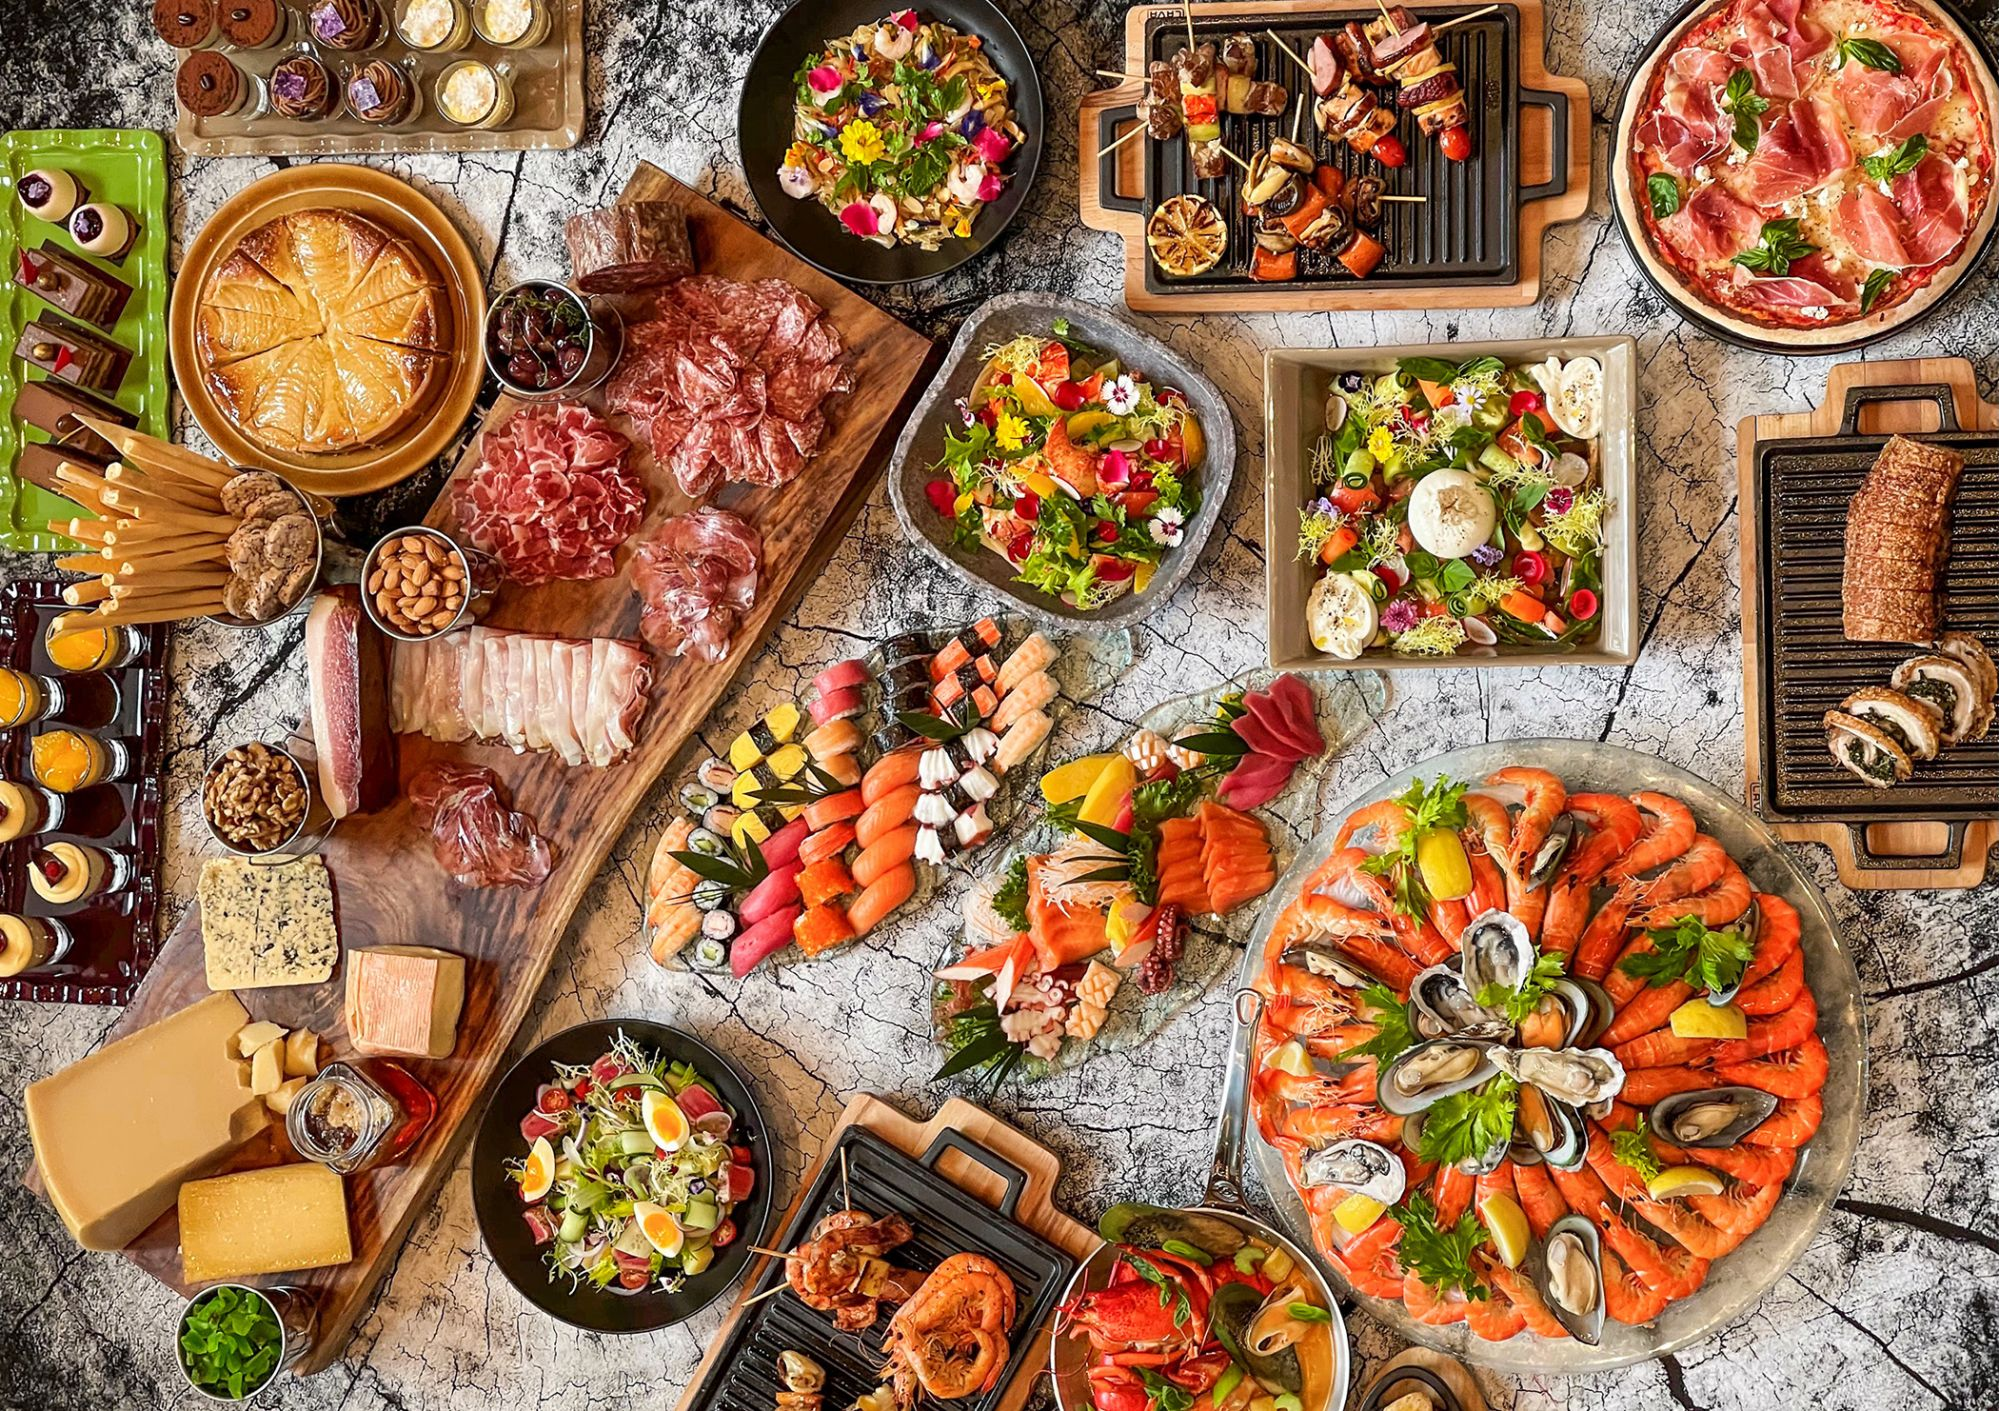 Volti Restaurant And Bar Presents New Sunday Brunch By The River